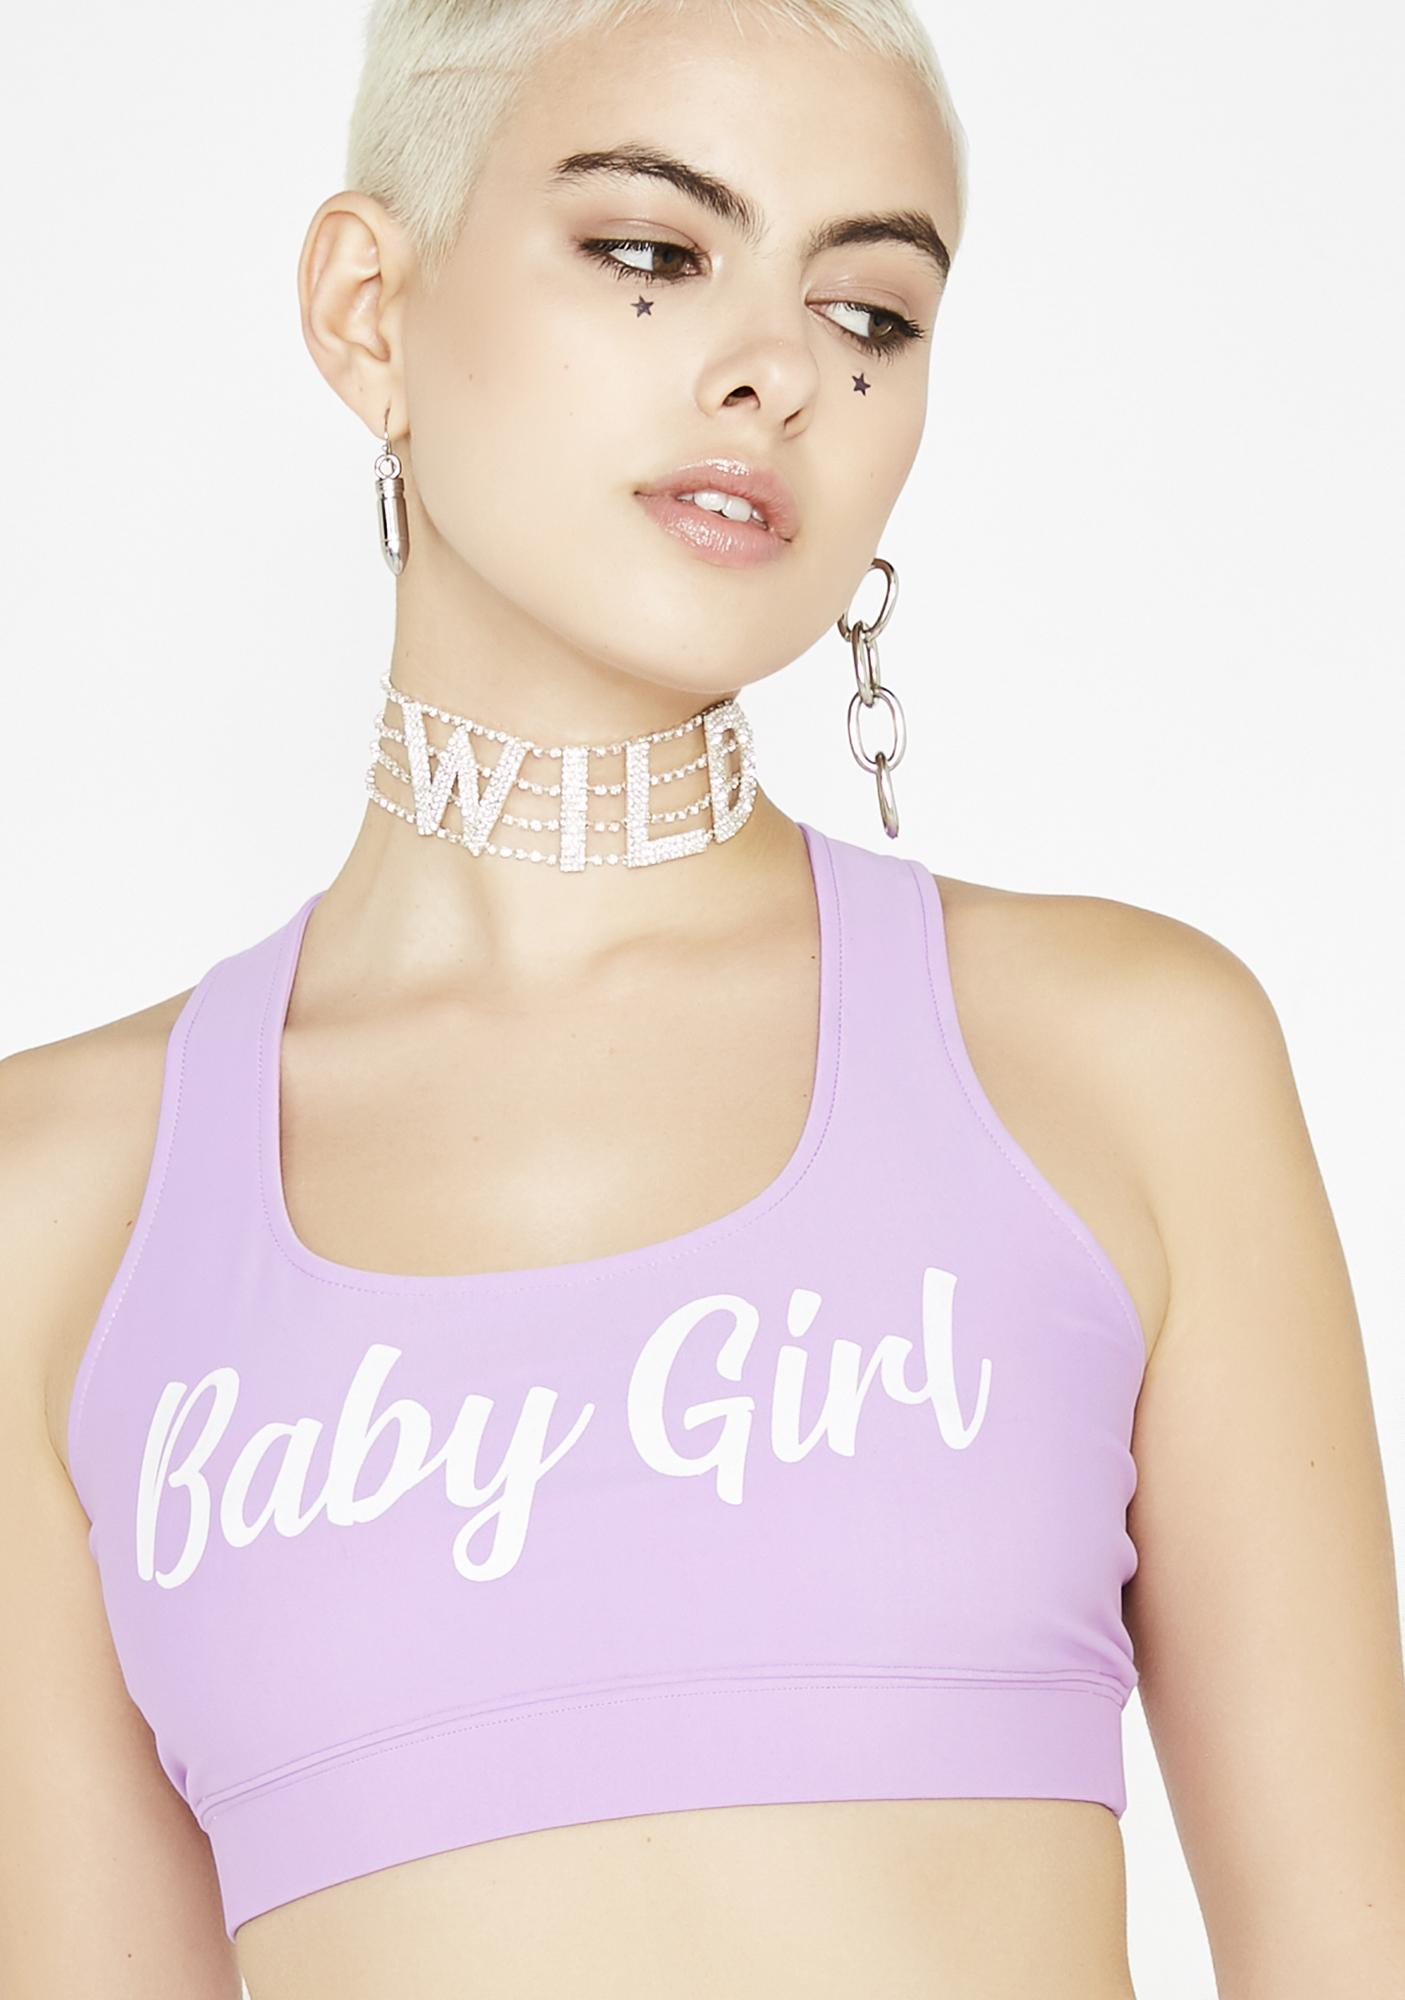 This Is A Love Song Baby Girl Sports Bra